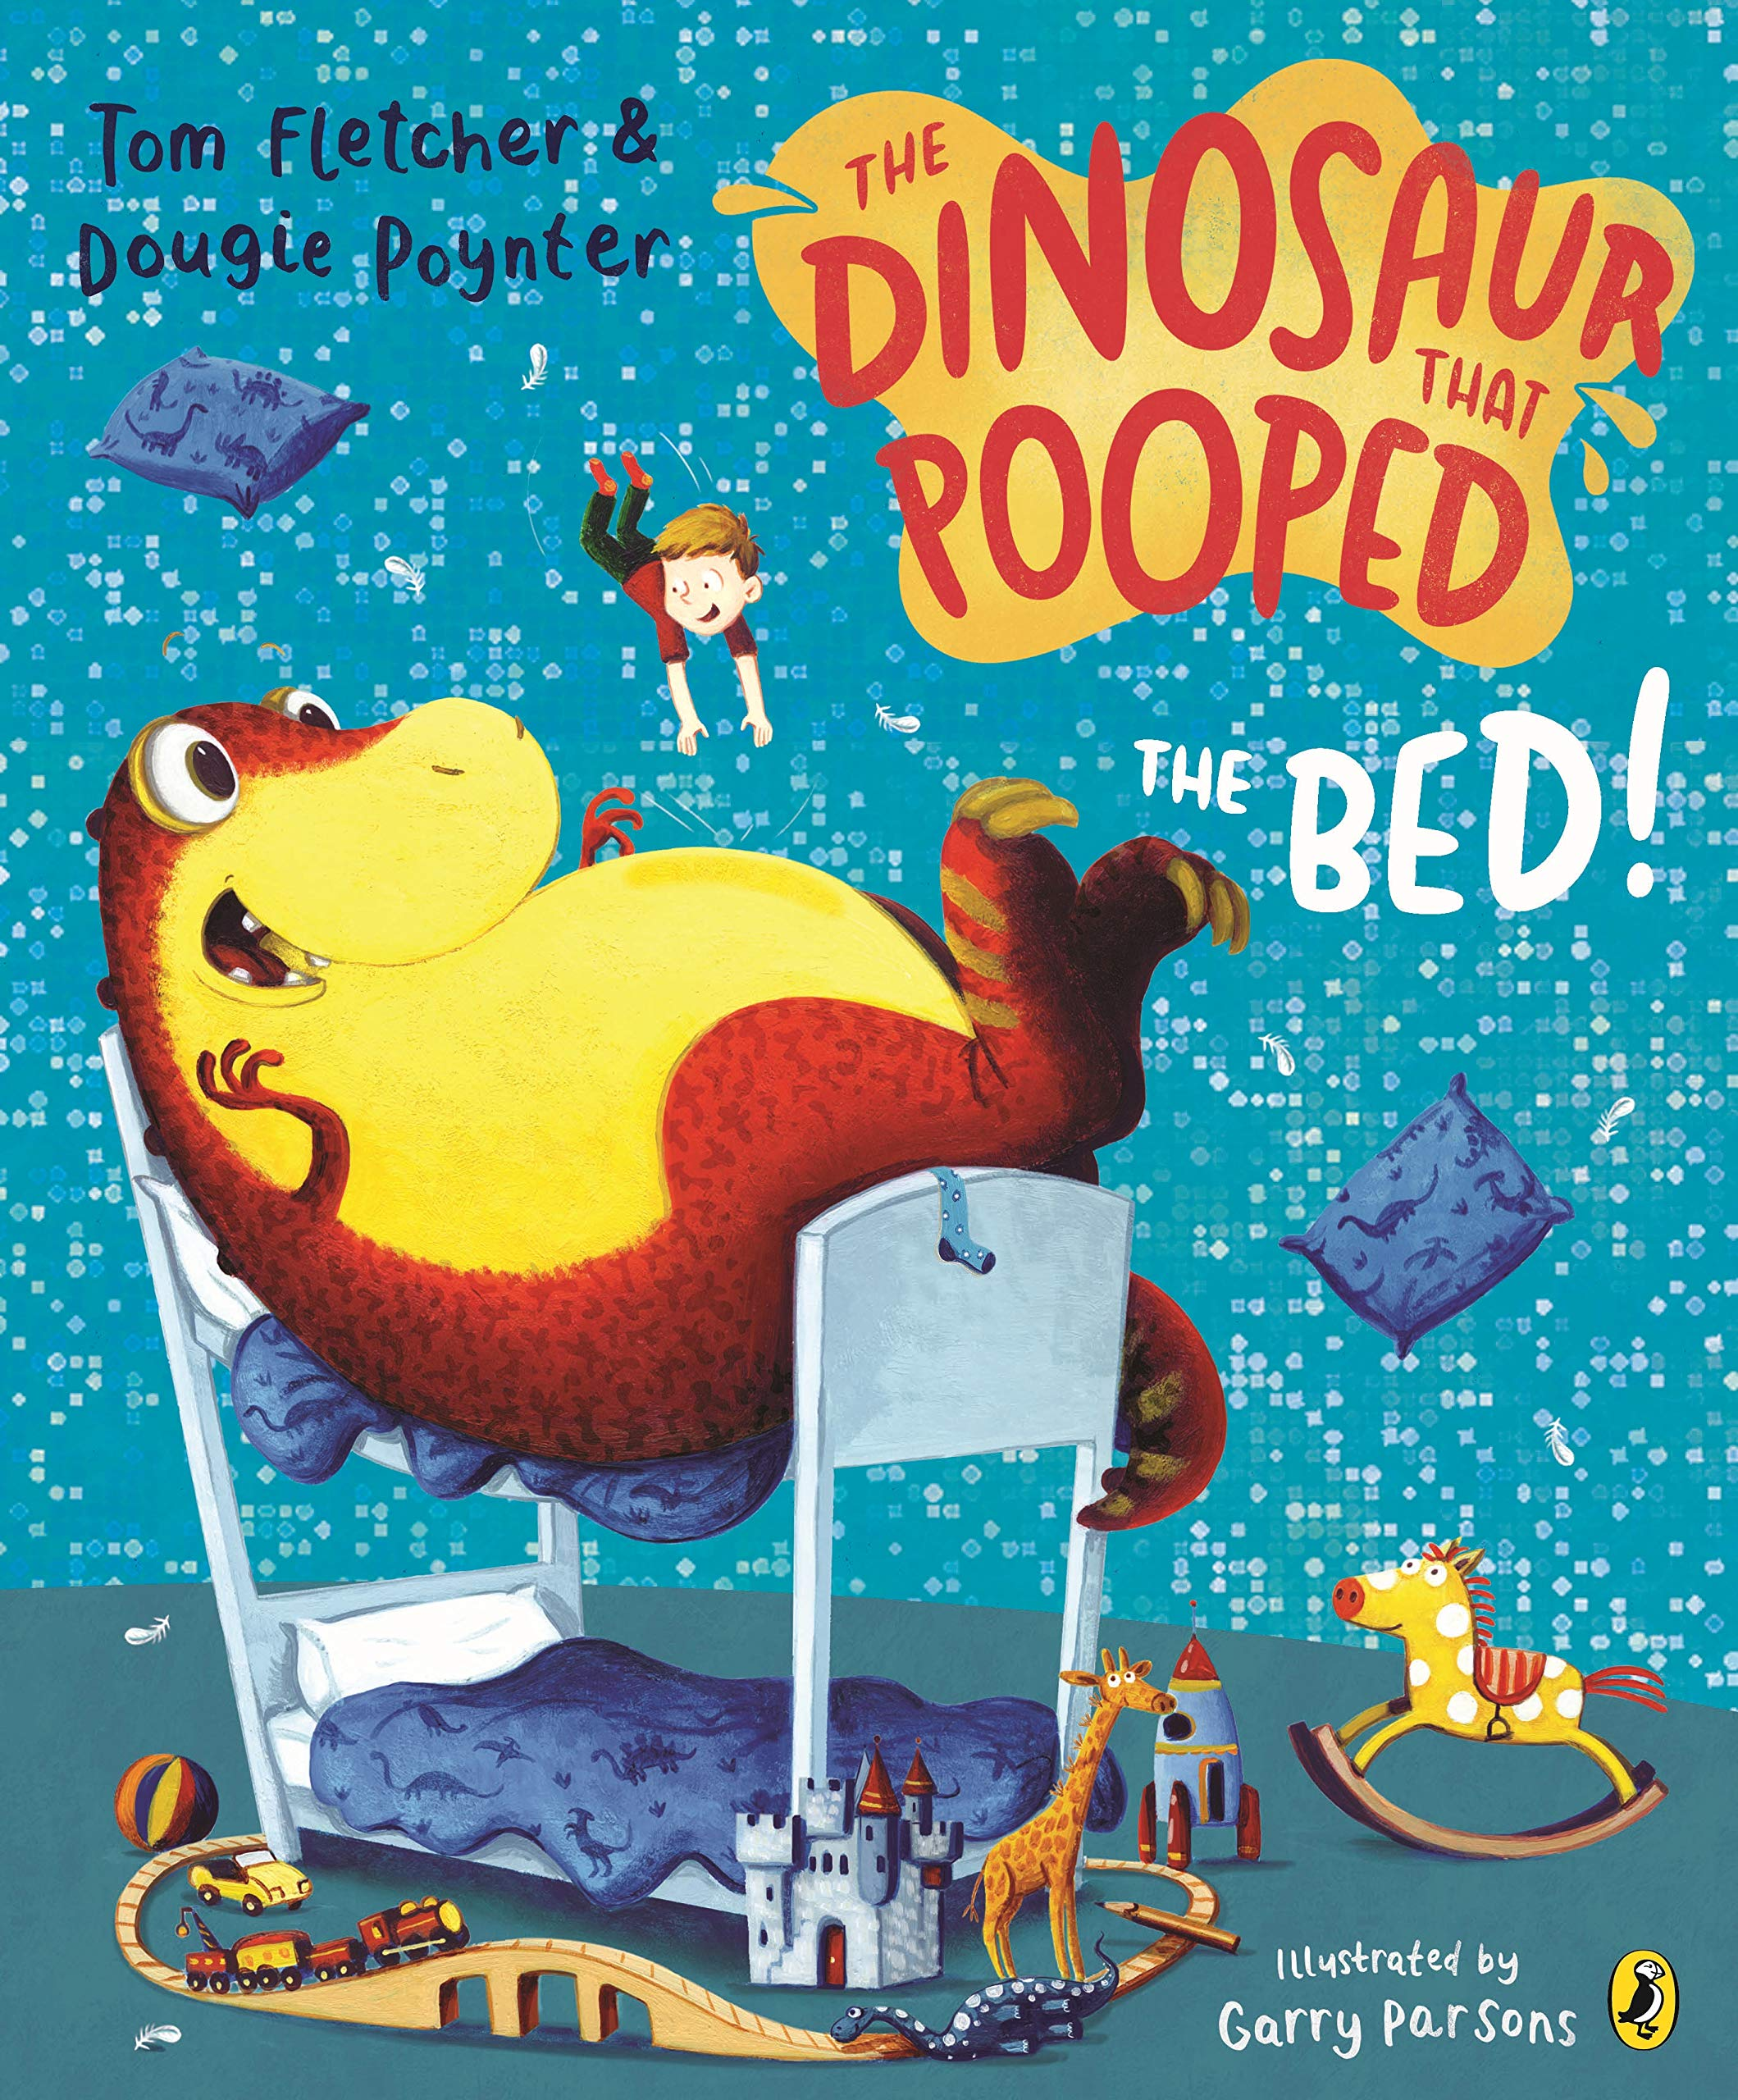 The Dinosaur That Pooped The Bed: Tom Fletcher Dougie Poynter: 9781782951797: Amazon.com: Books